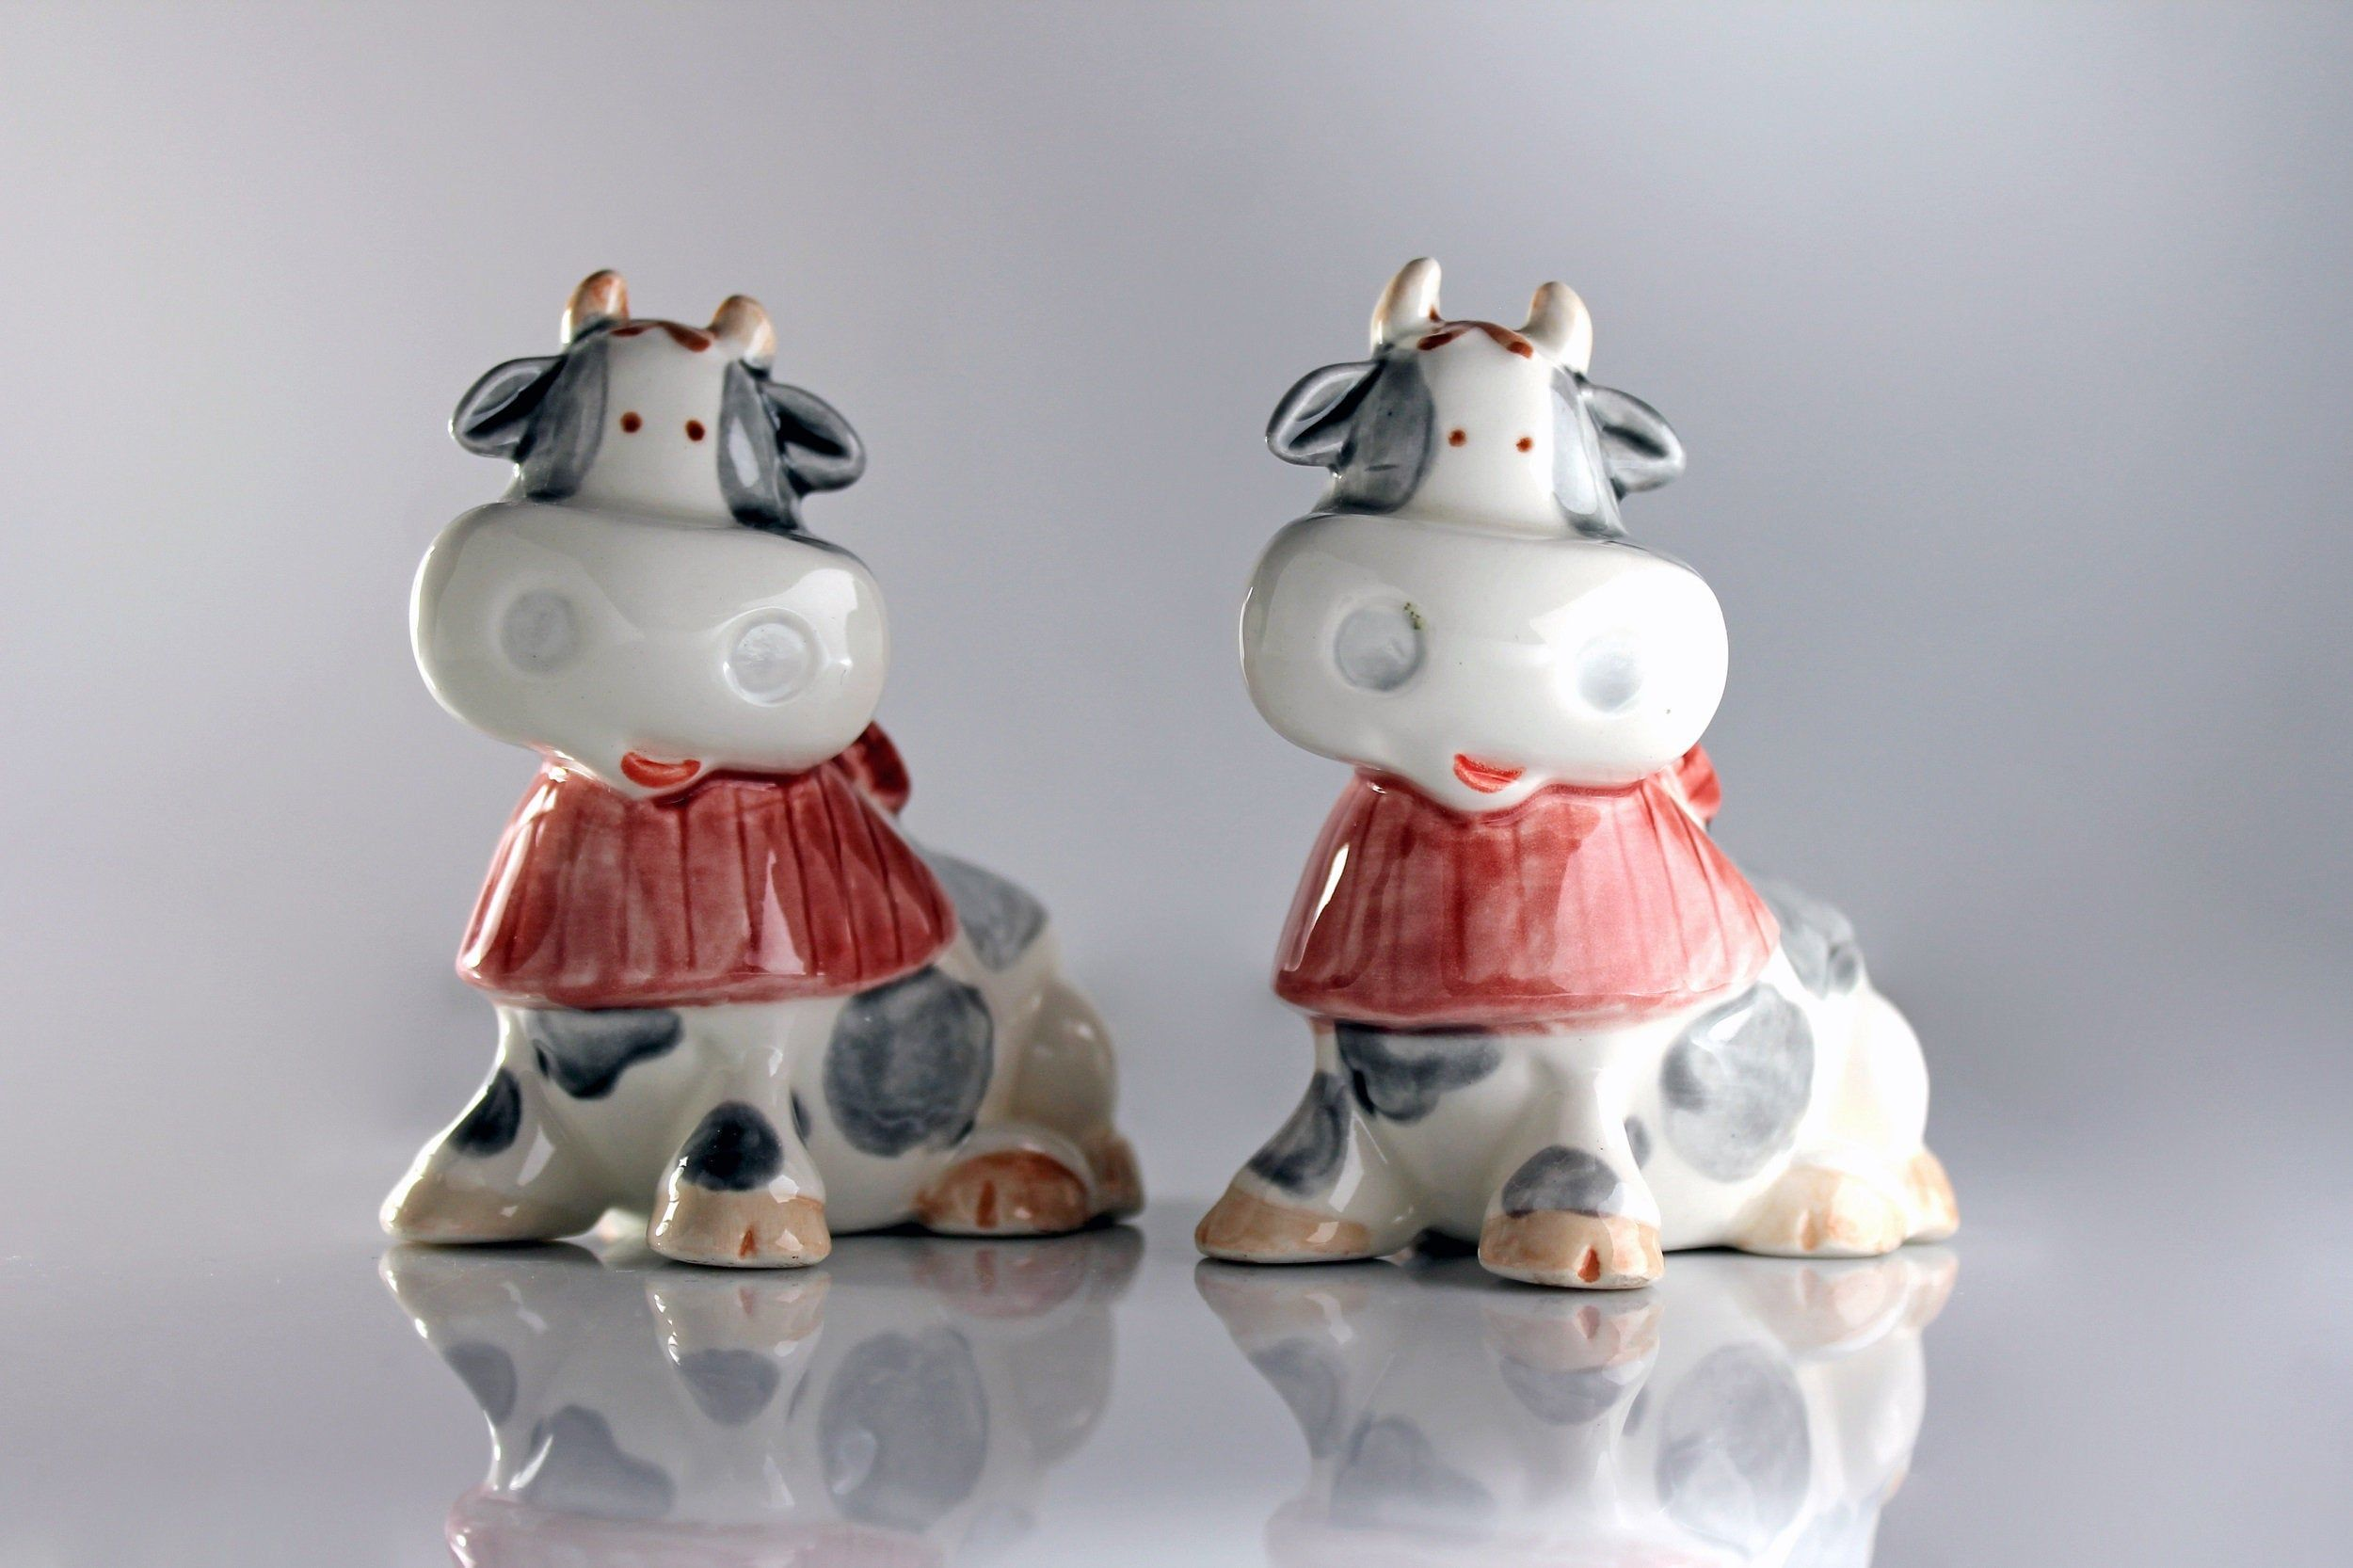 Cow salt and pepper set grey and white ceramic shakers